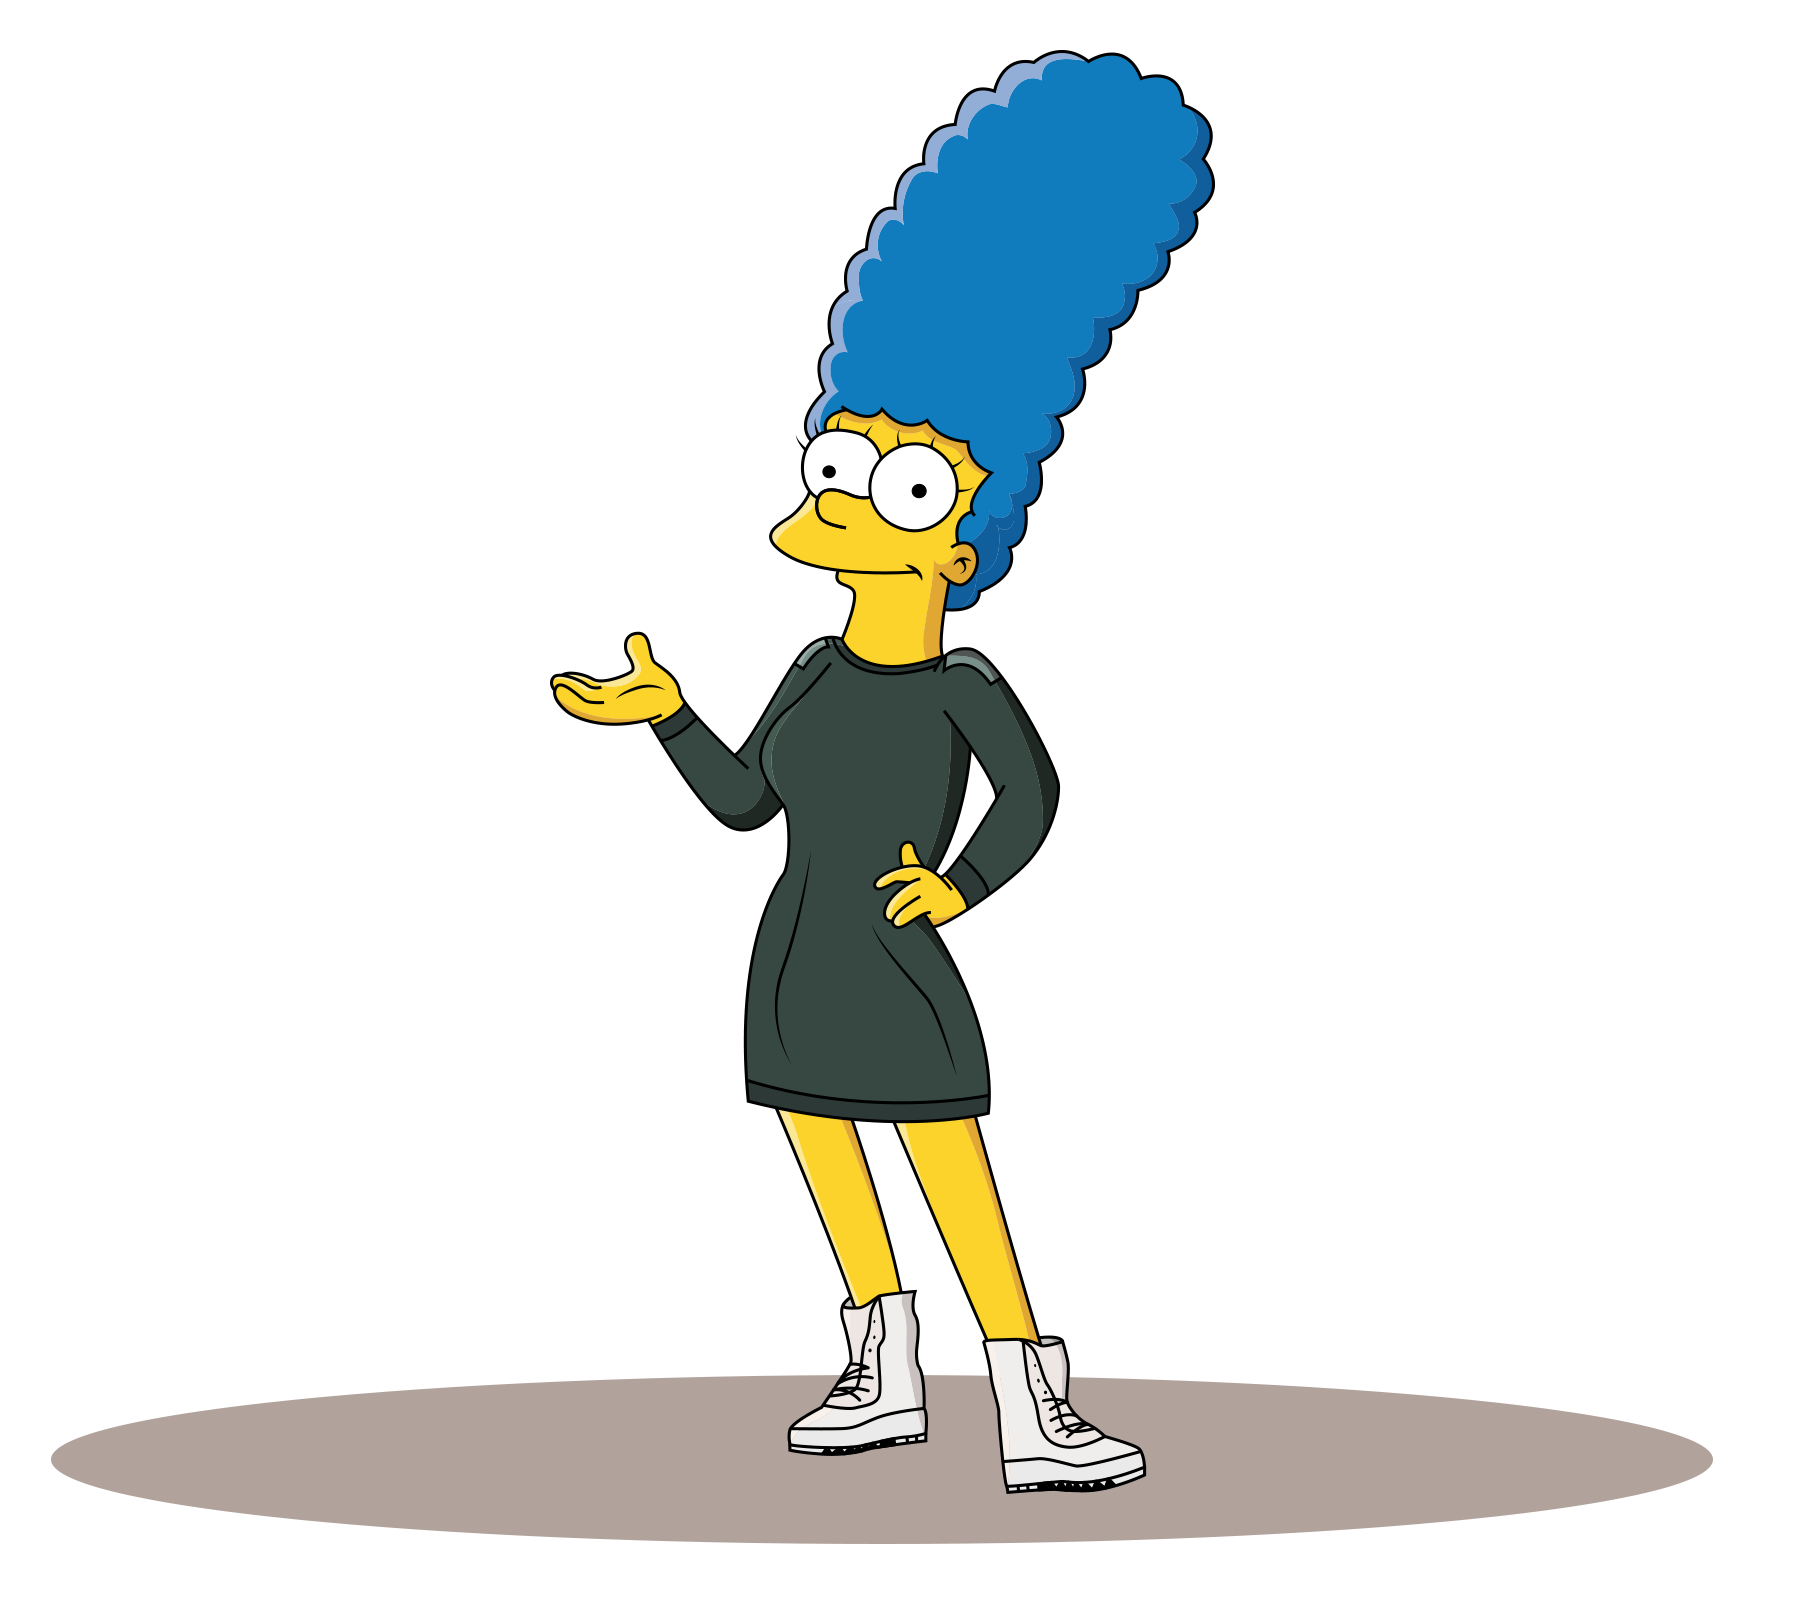 The simpsons x machonis. Yeezus drawing yeezy clothing clipart freeuse stock